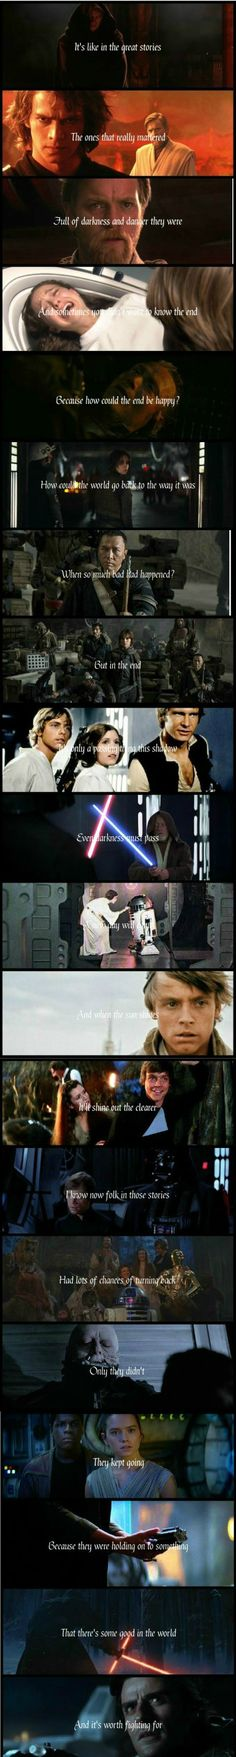 Star Wars Edit by: Princess Yoda. Please give credit if shared.